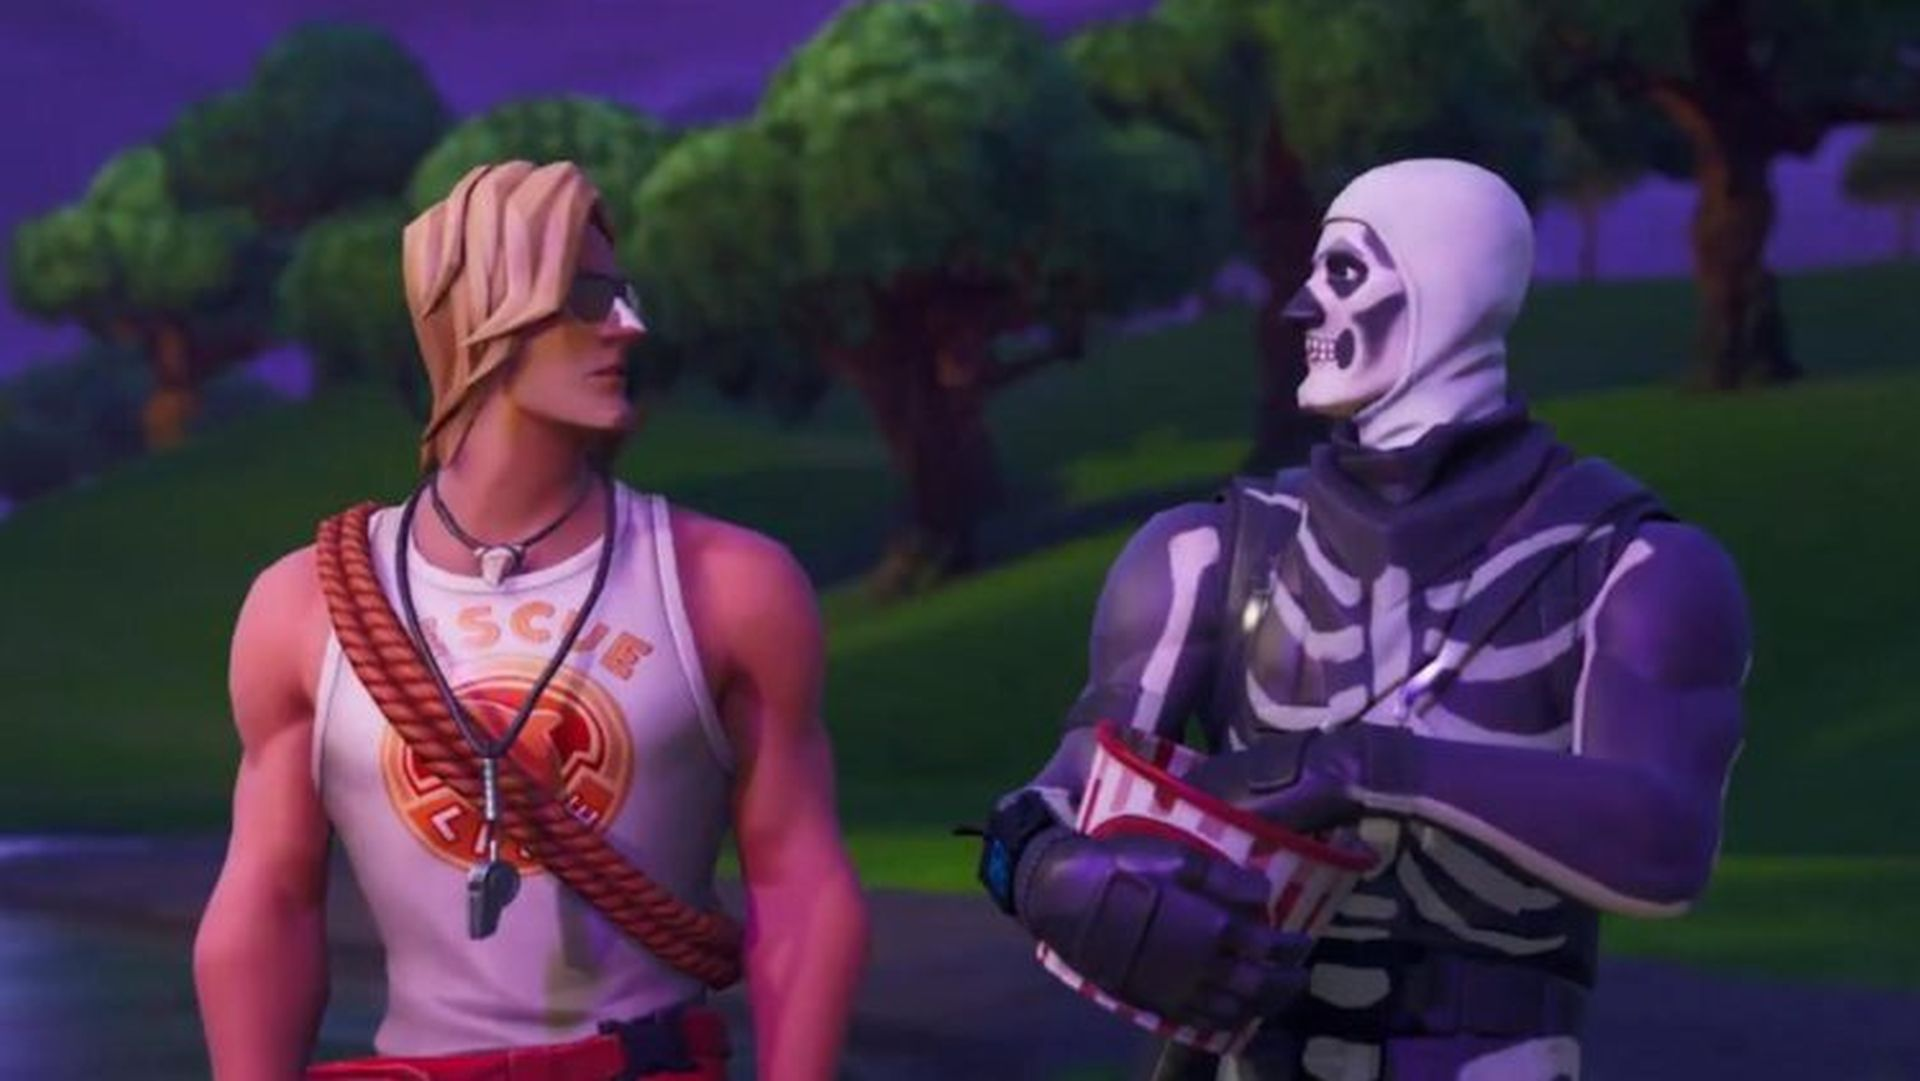 skull trooper - photo #6